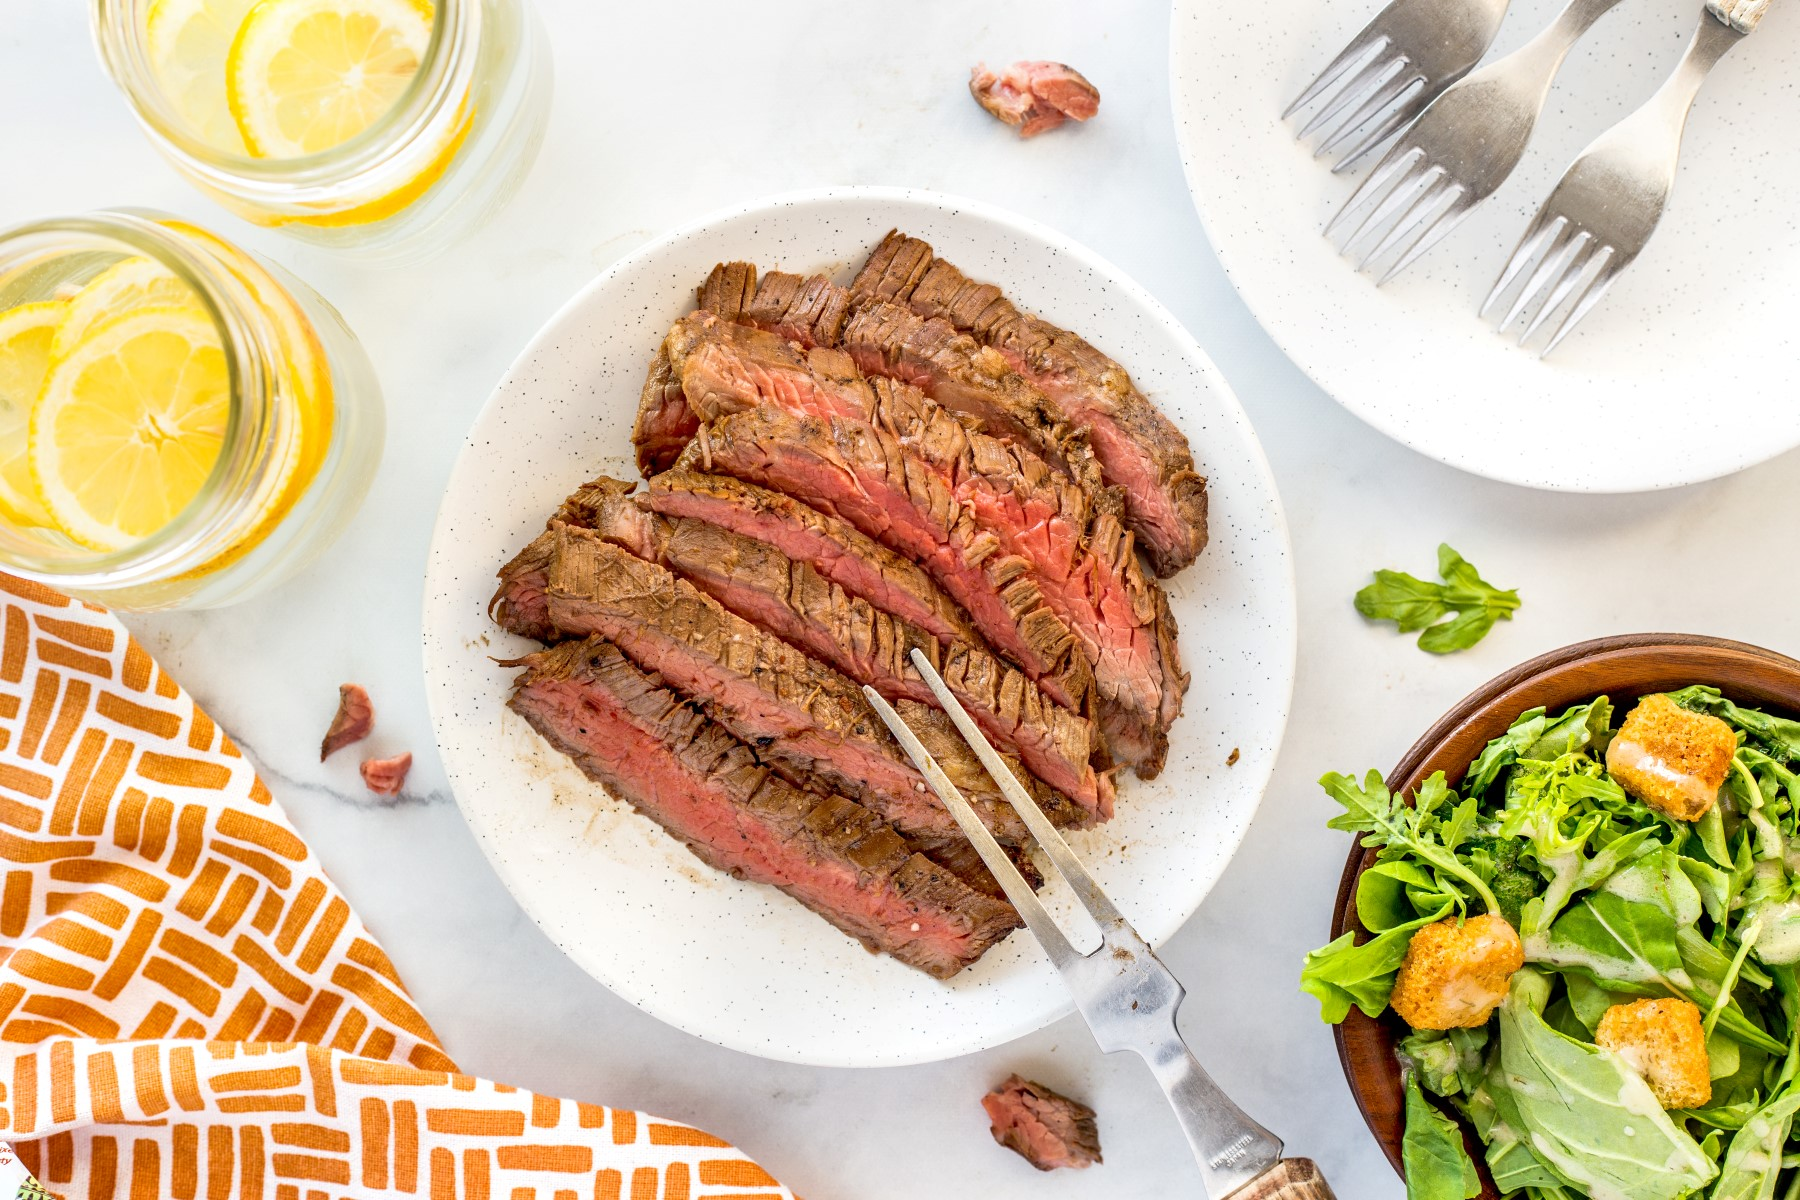 Thinly sliced grilled flank steak on a white plate with a bowl of green salad beside the plate.